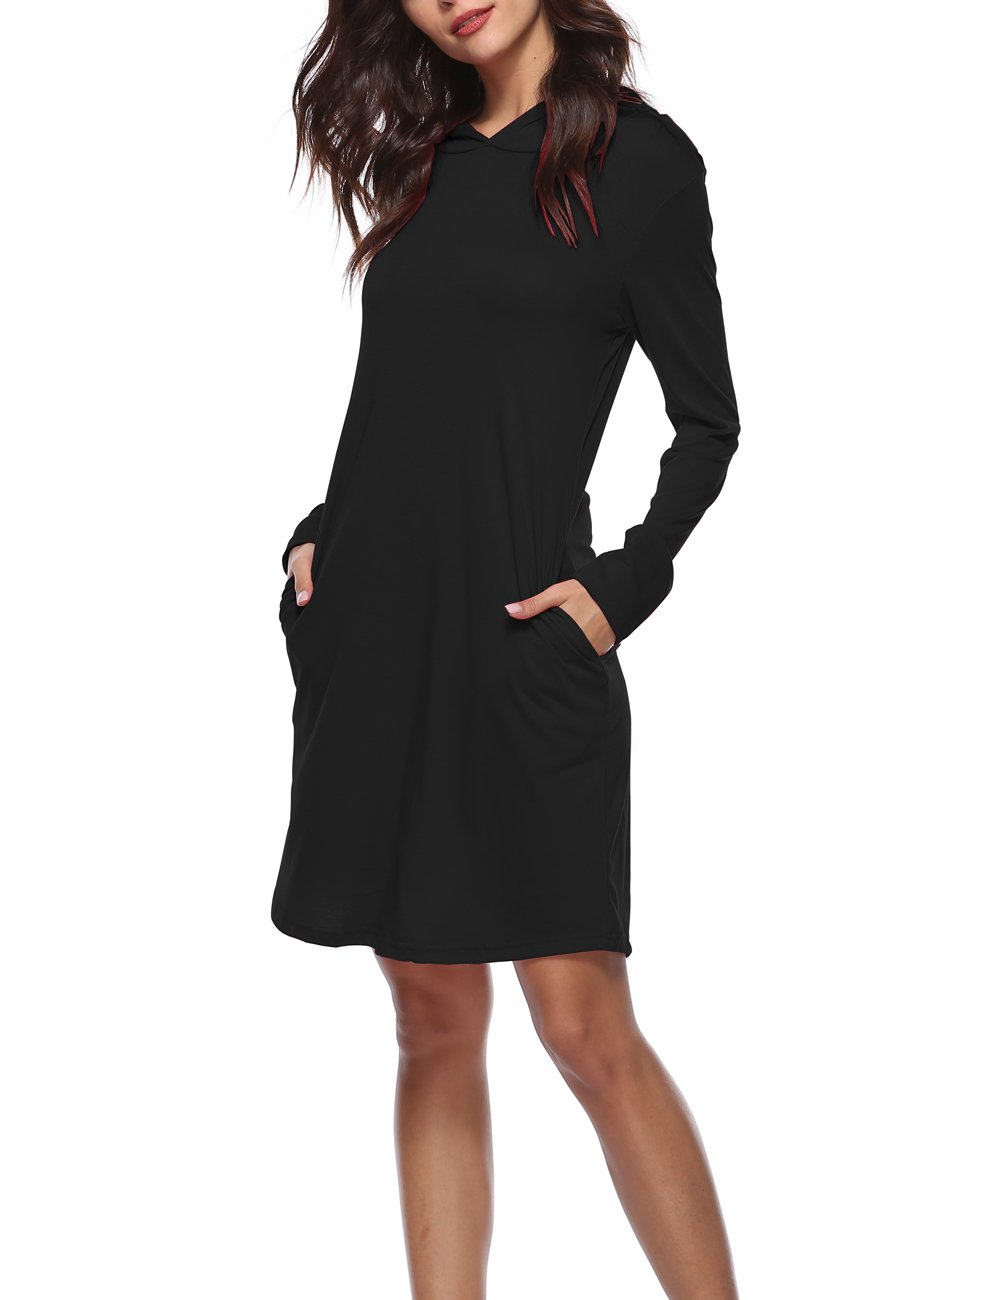 Women Pullover Long Sleeve Keen Length Slim Sweatshirt Causal Hoodie Dress with Pocket for Sport for Spring Summer Autumn (13 Black S)